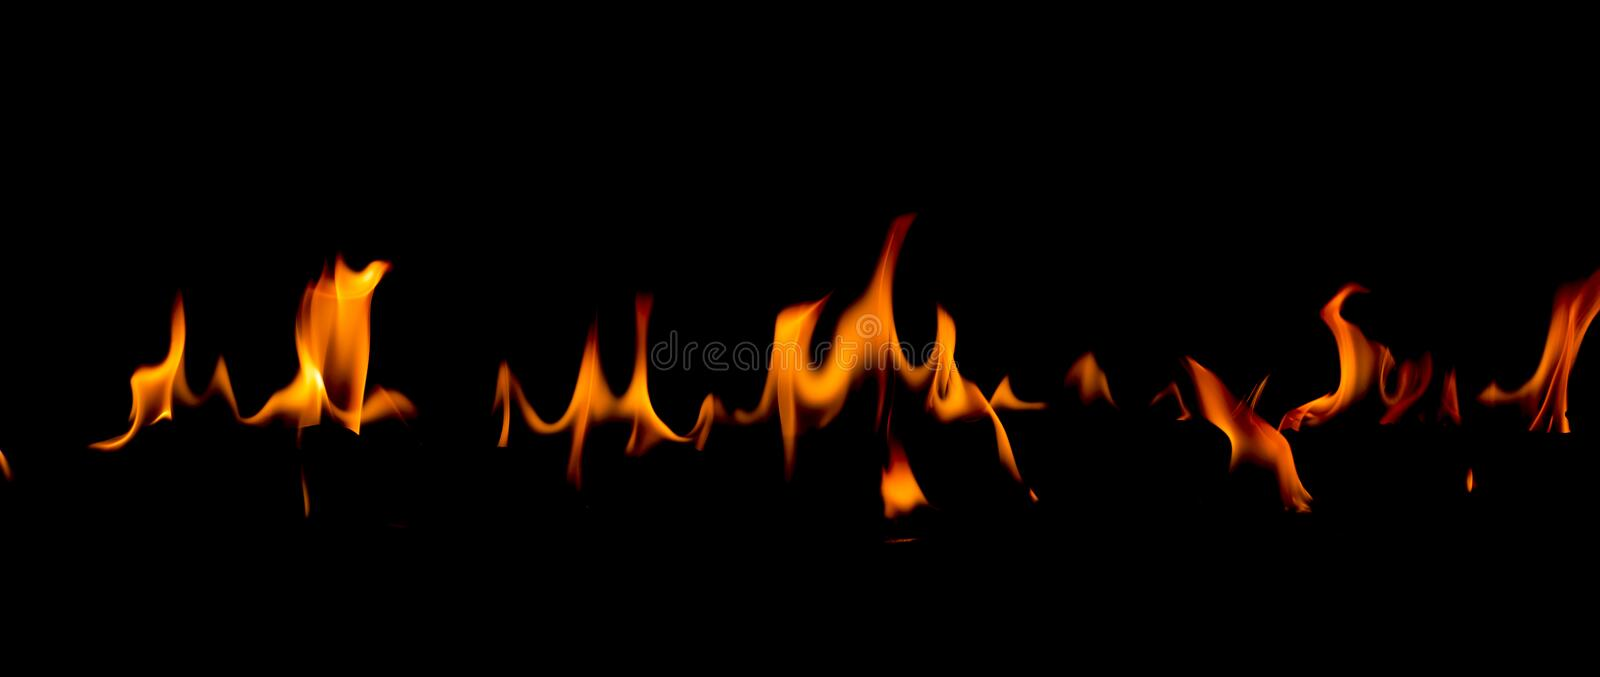 Fire flames on Abstract art black background, Burning red hot sparks rise. Fiery orange glowing flying particles royalty free stock photography